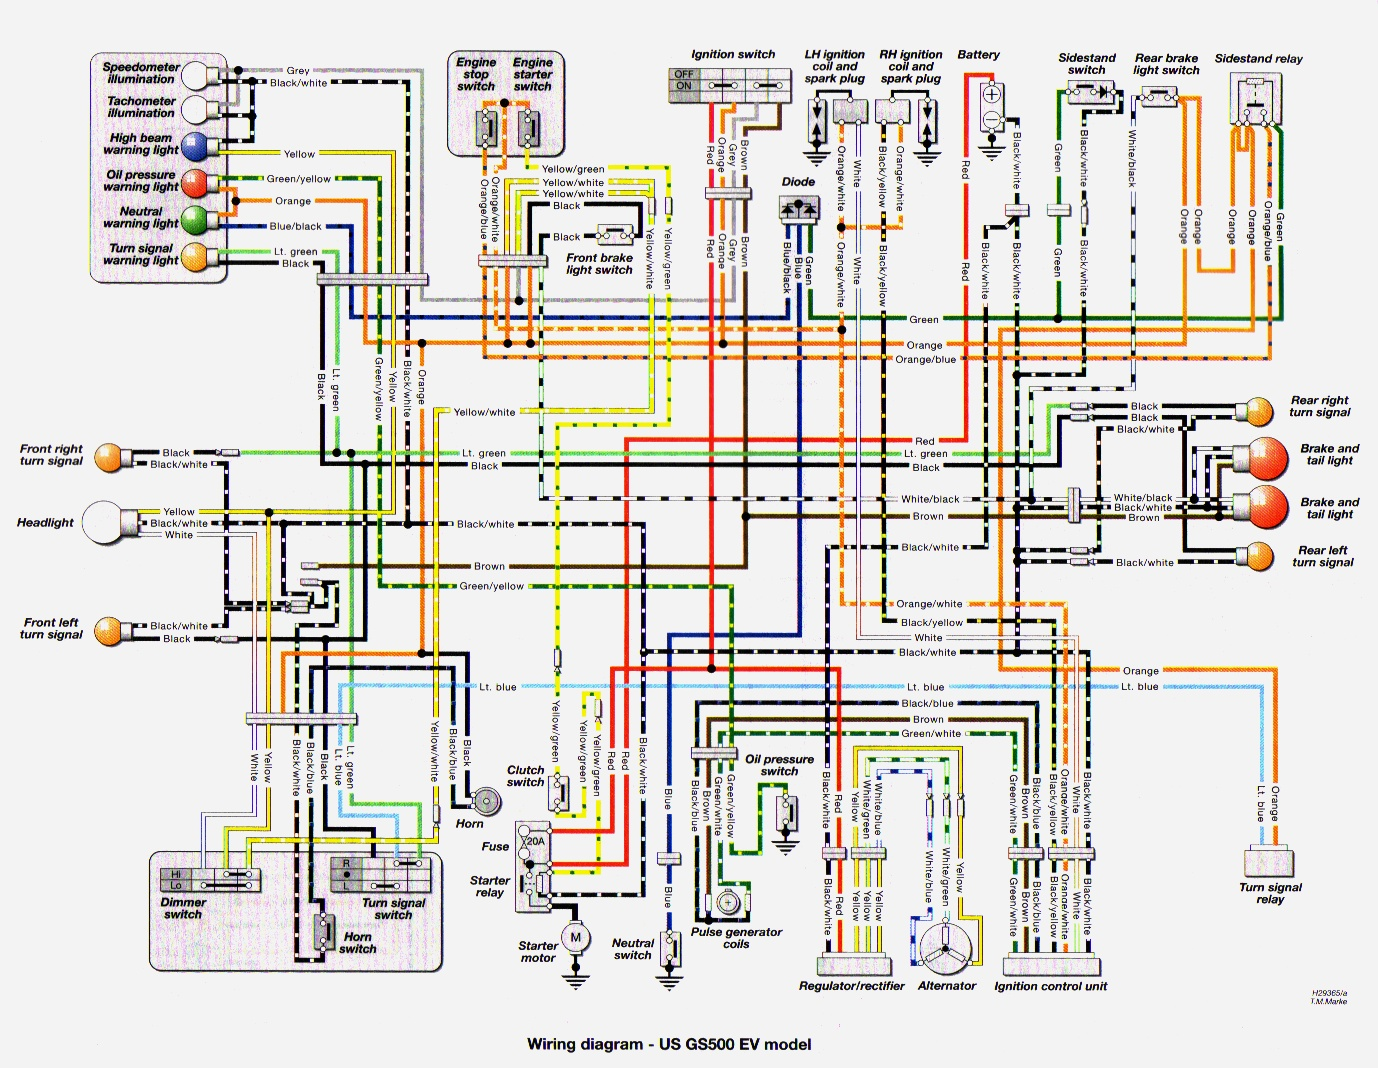 Universal Glow Plug Wiring Diagram Auto Electrical M1009 Fuse Box Automotive Wire Connector